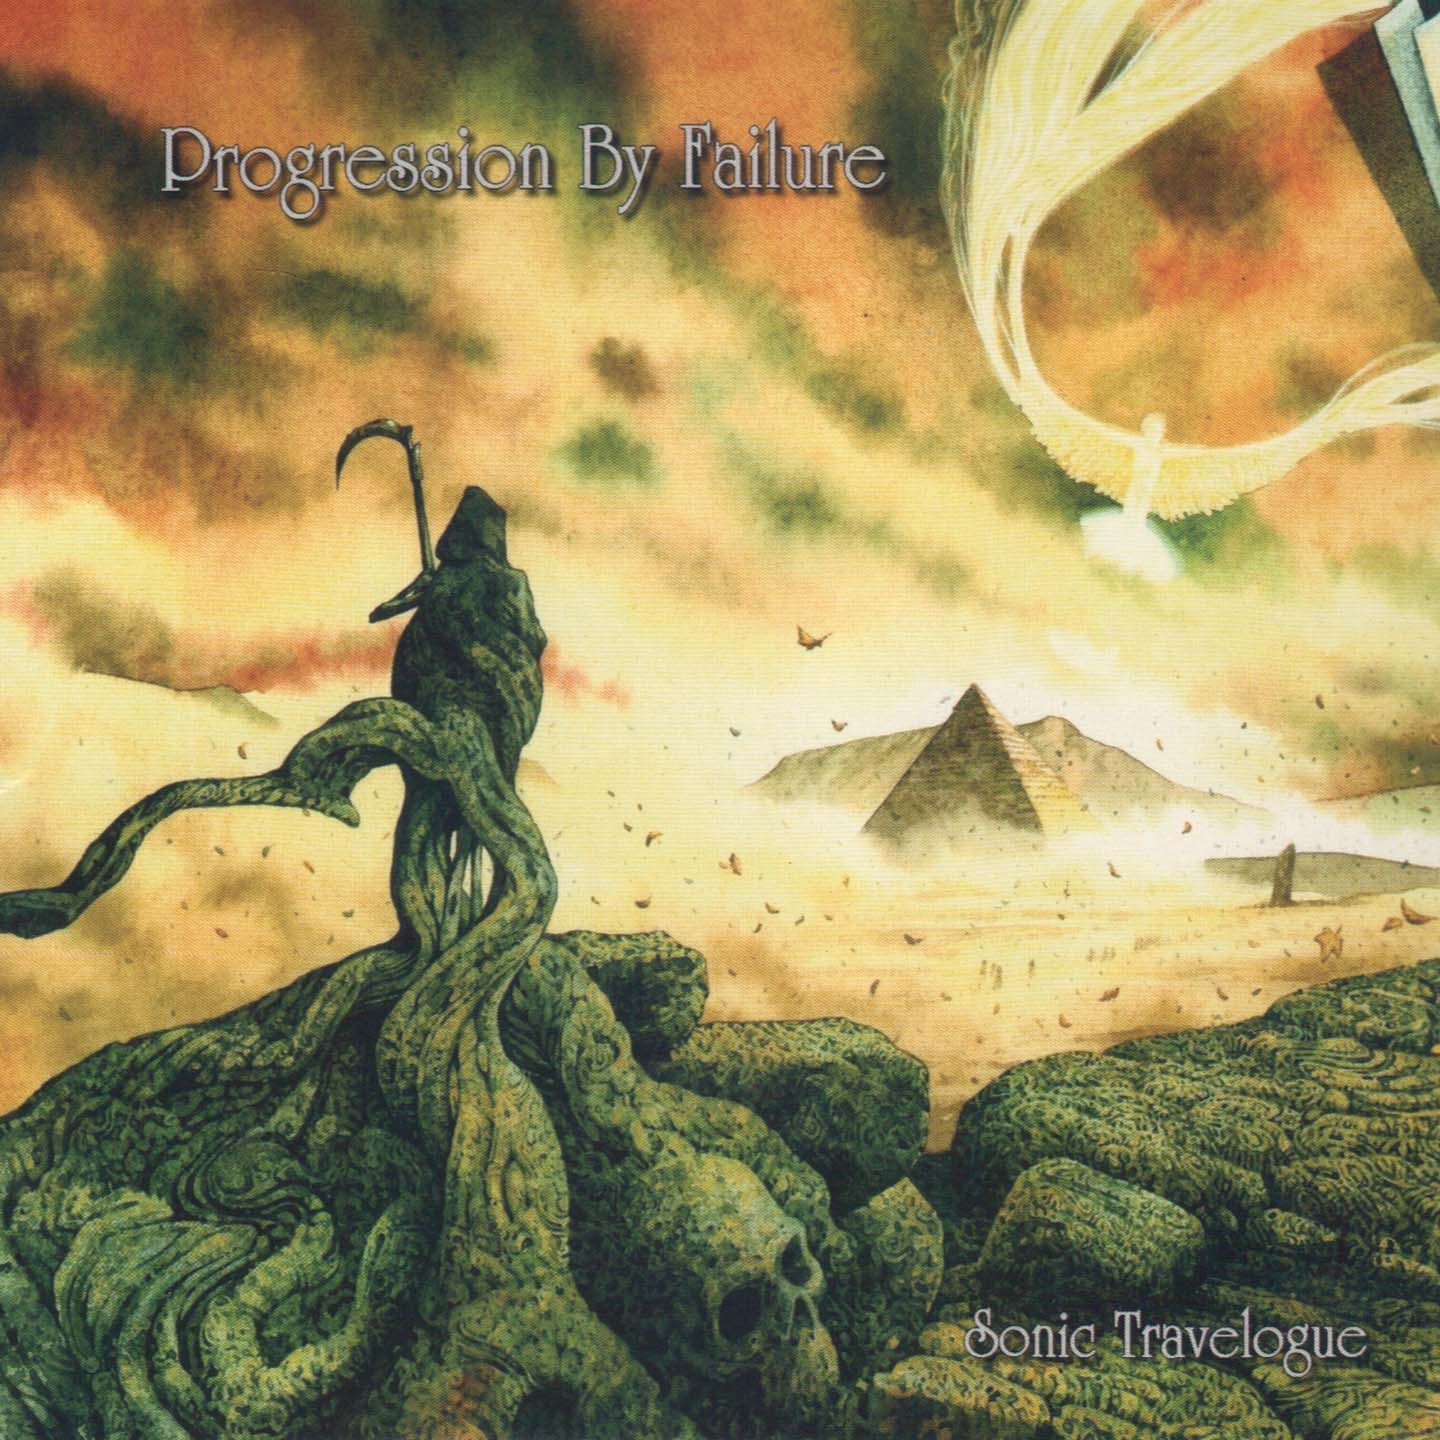 Progression by Failure: Sonic Travelogue